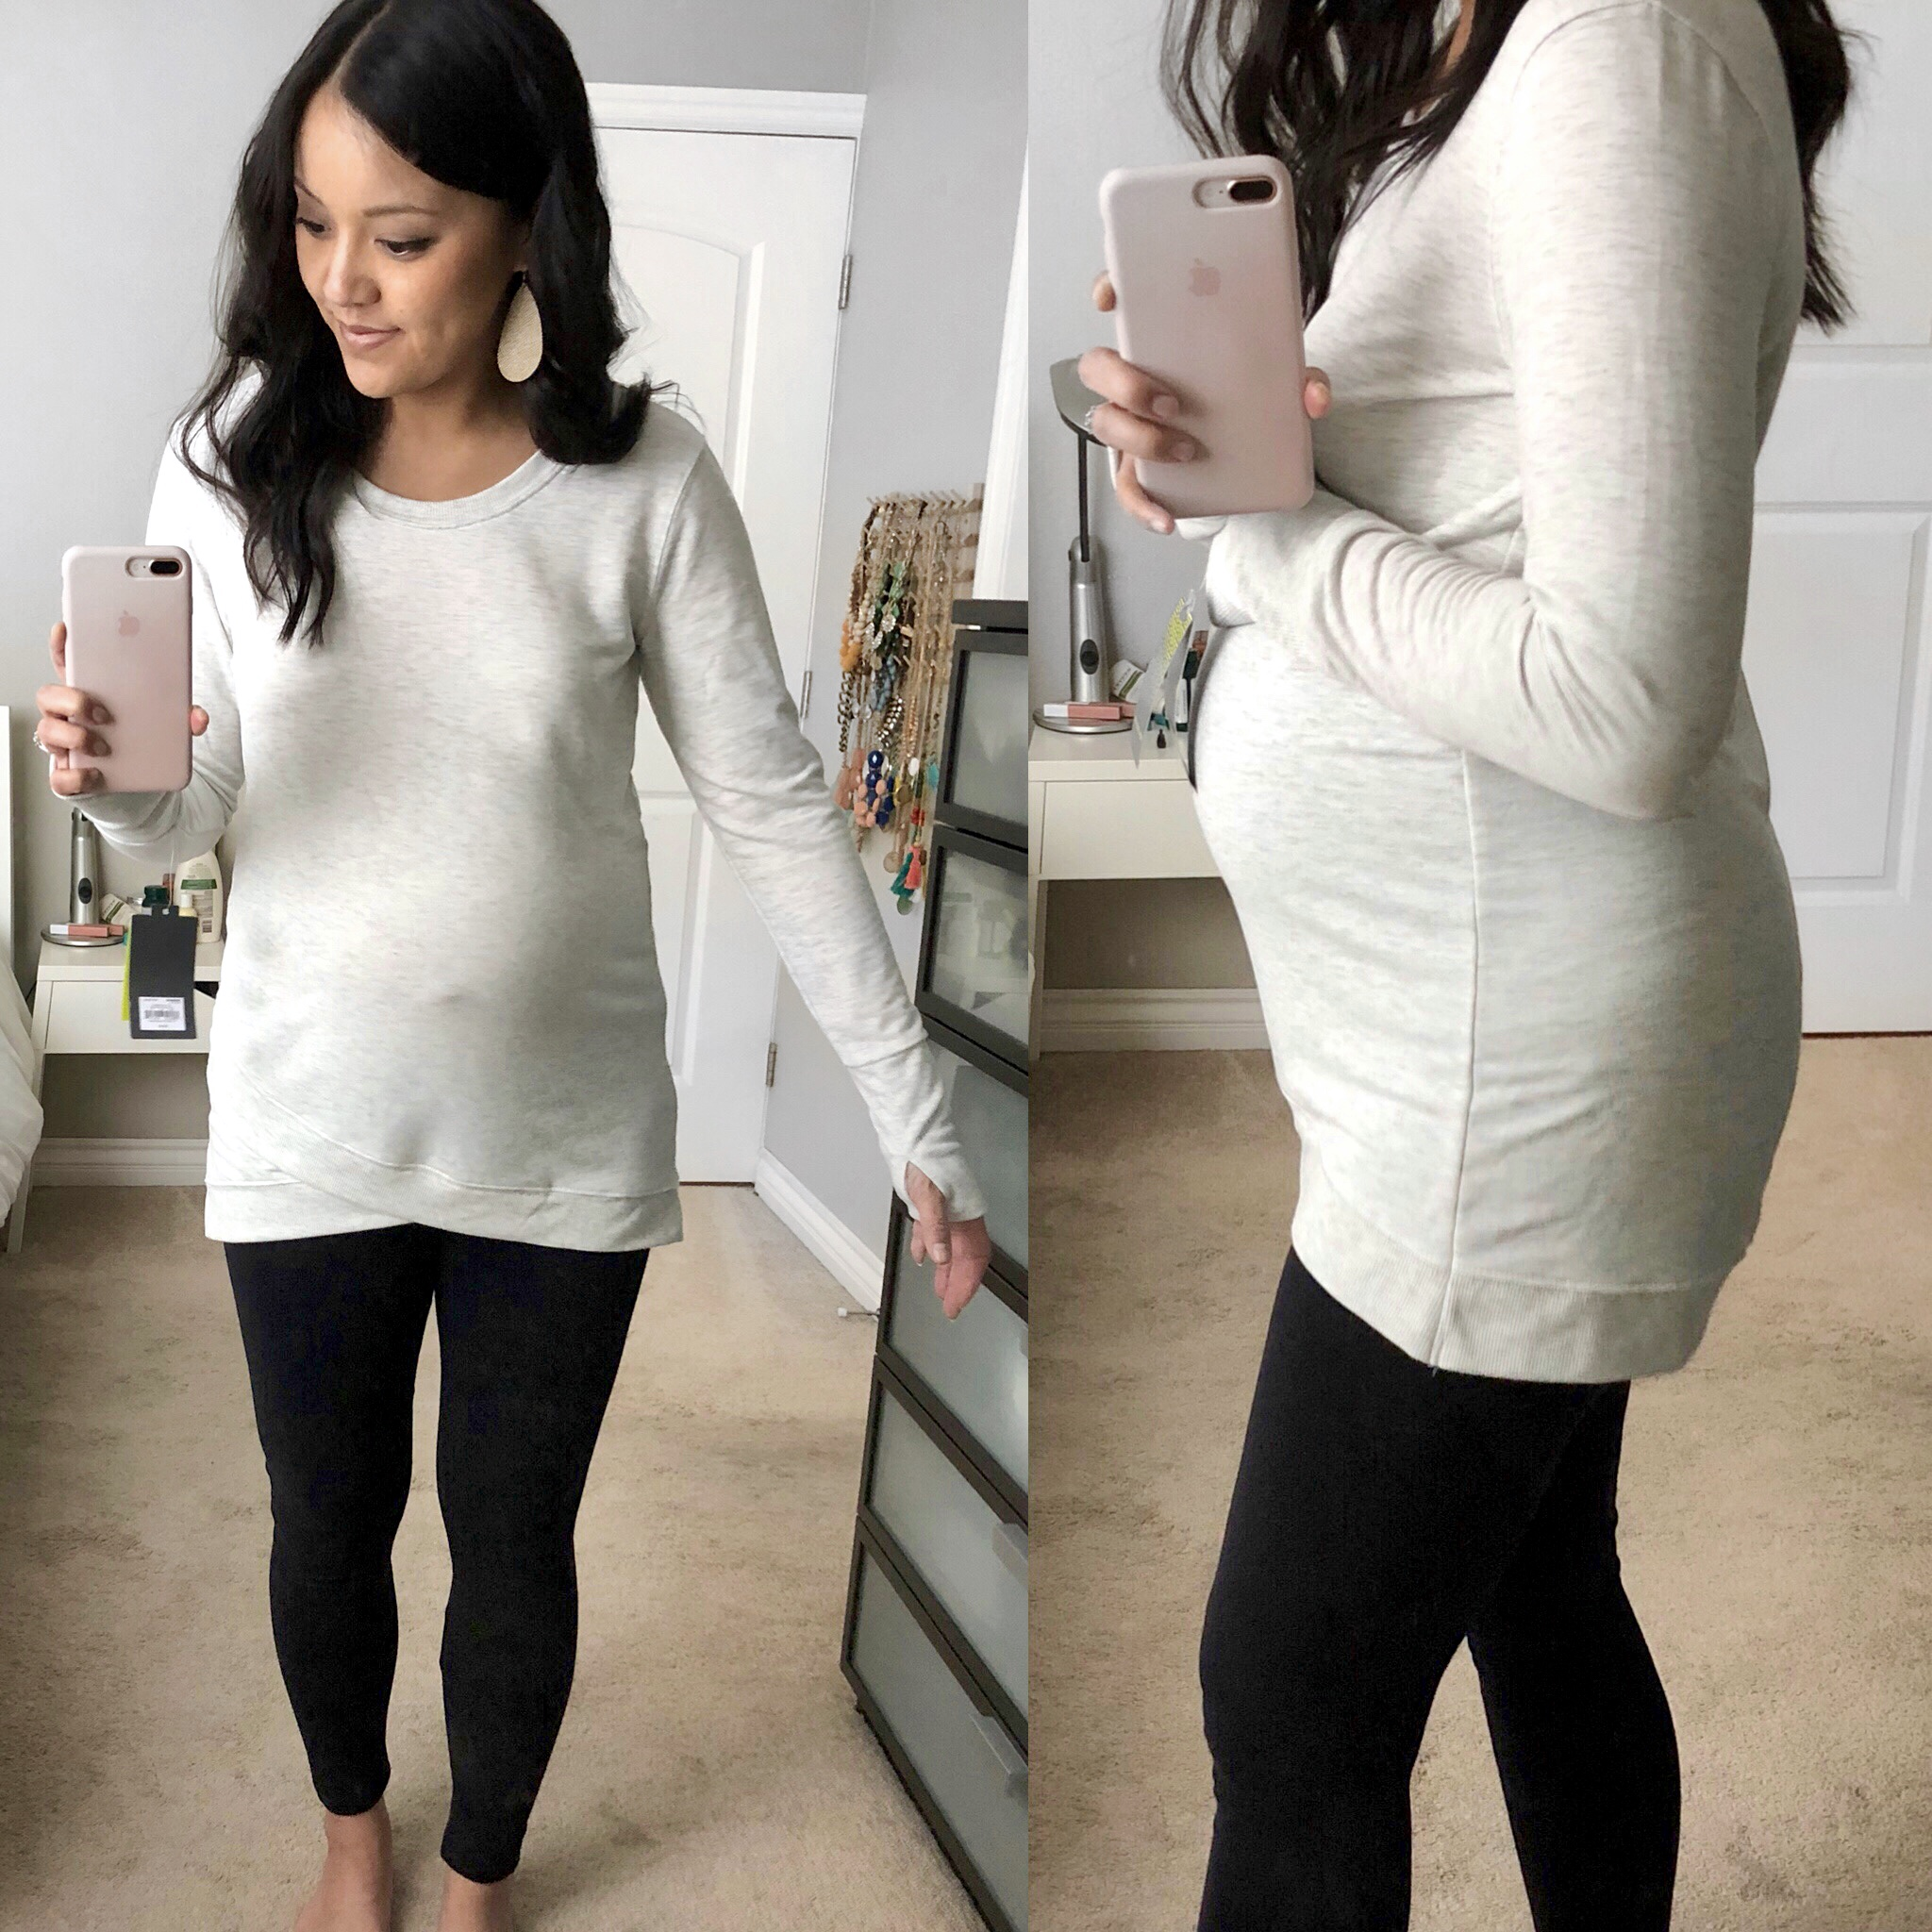 maternity business casual photo - 1